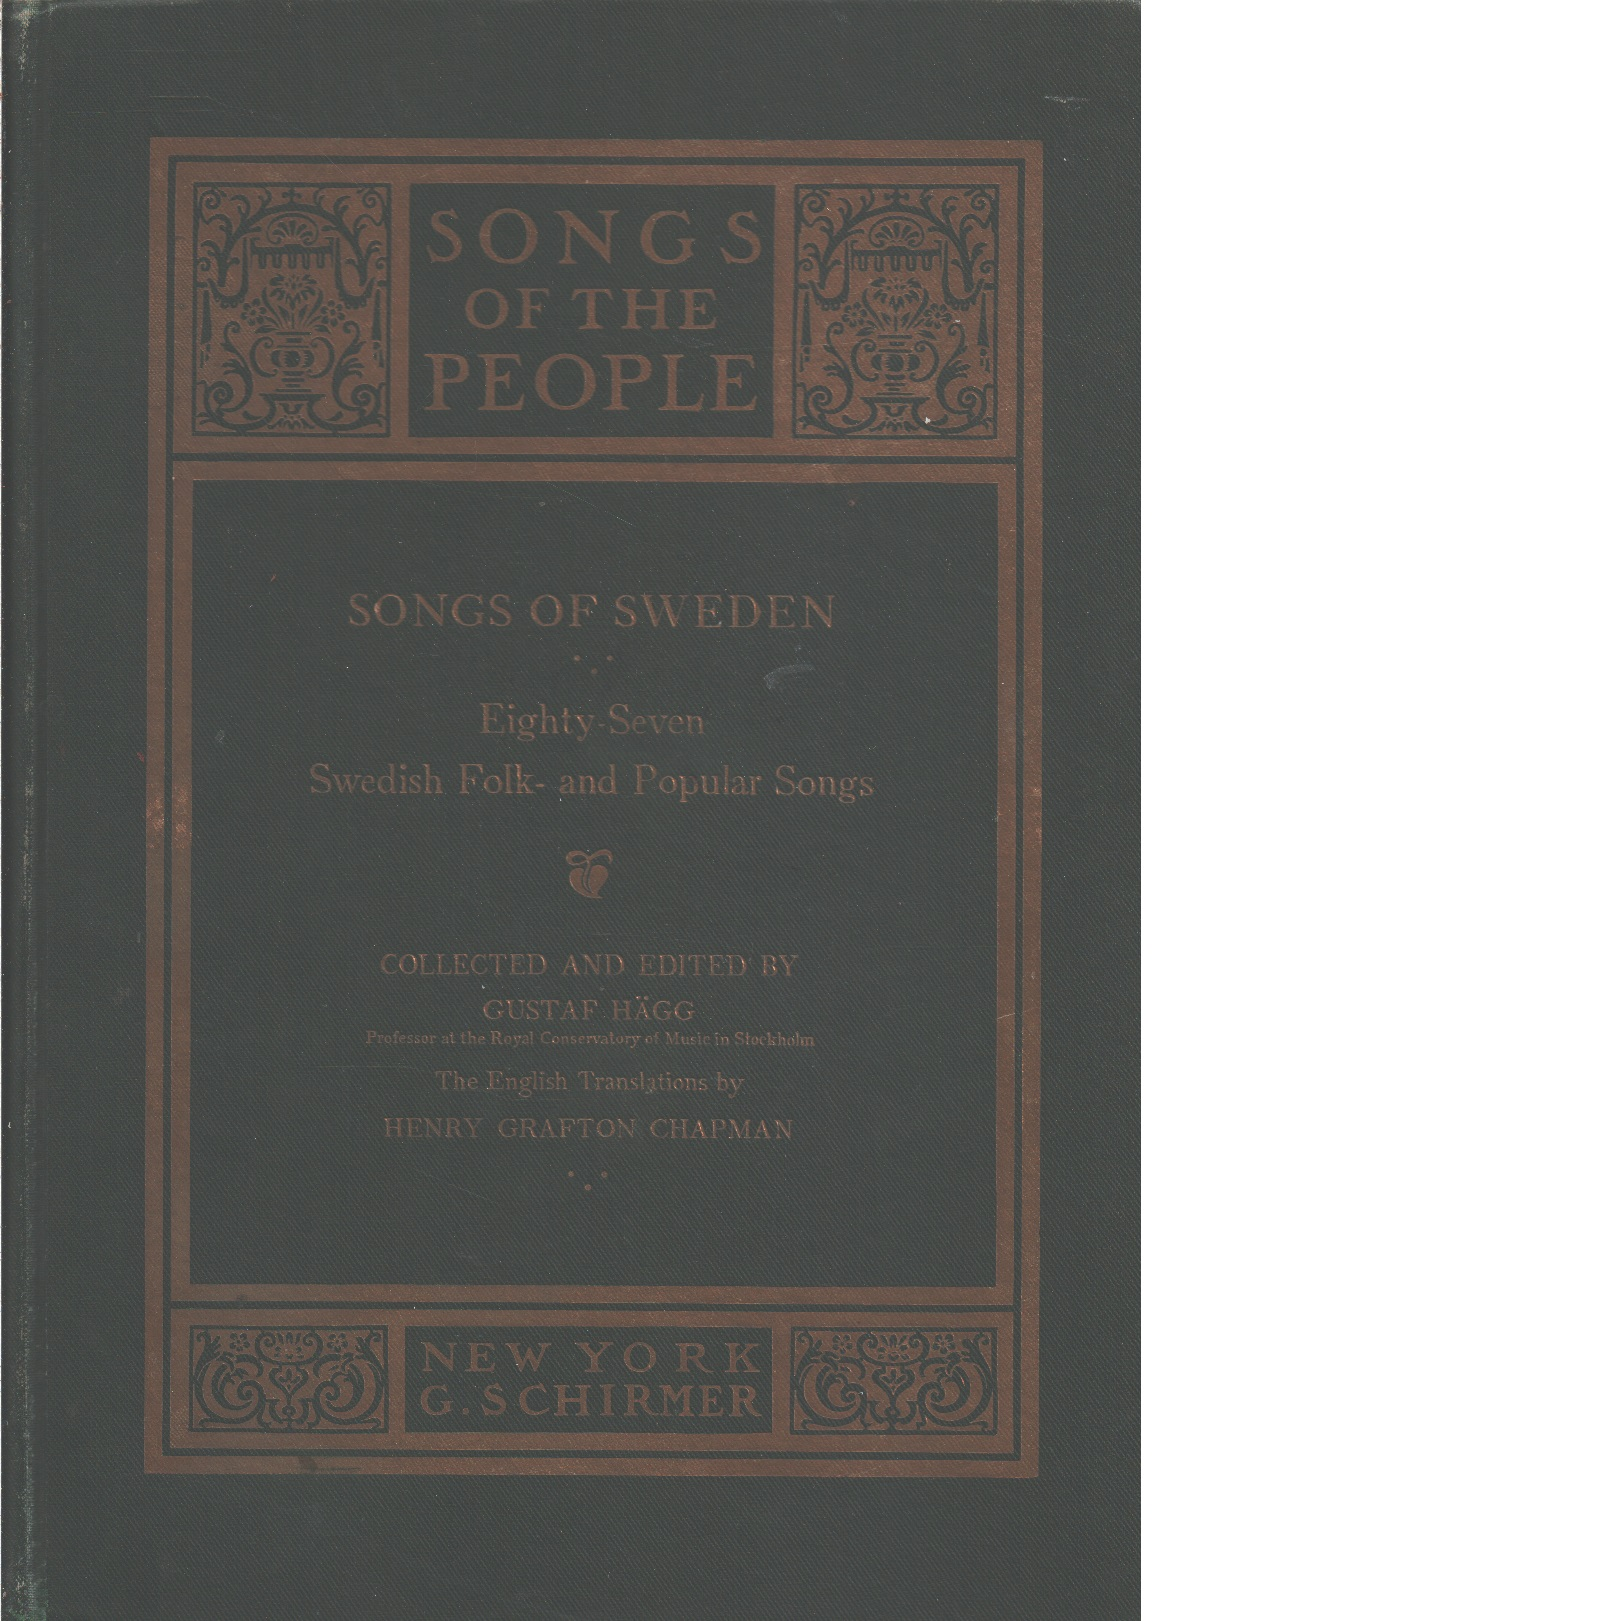 Songs of Sweden : eighty-seven Swedish folk- and popular songs [Text med Noter] - Red. Hägg, Gustaf